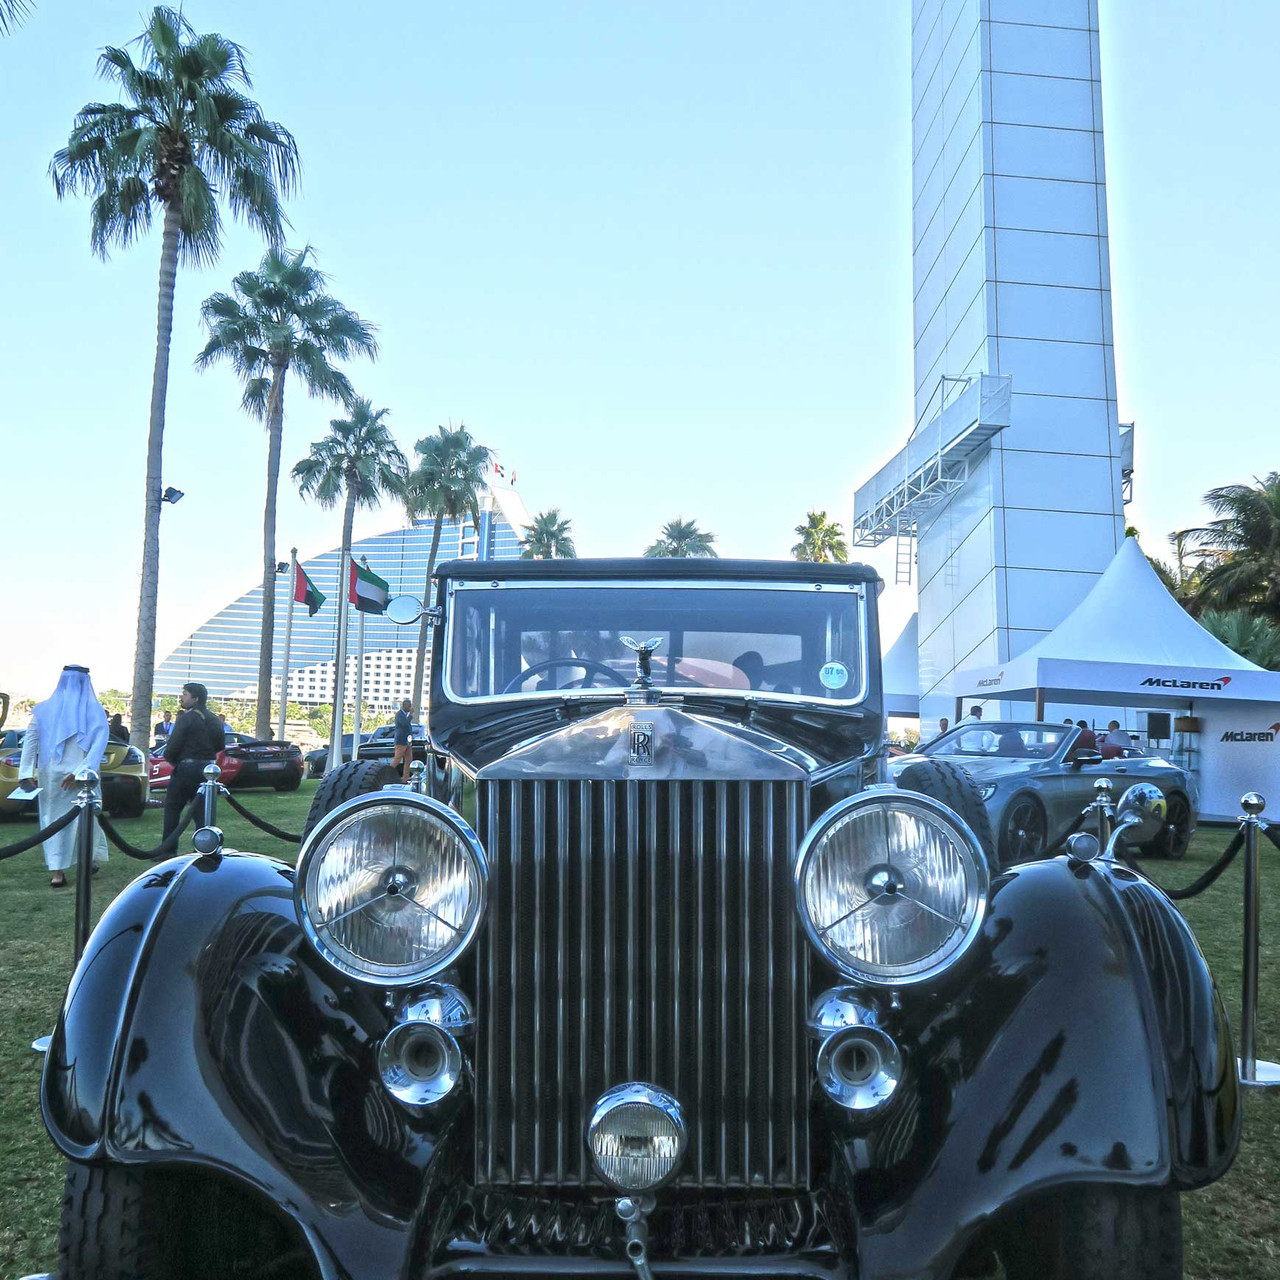 Last but not least this imposing Rolls Royce from the 30's. Overall a great event with some incredible automobiles on display, now lets see what the 2017 edition will bring!